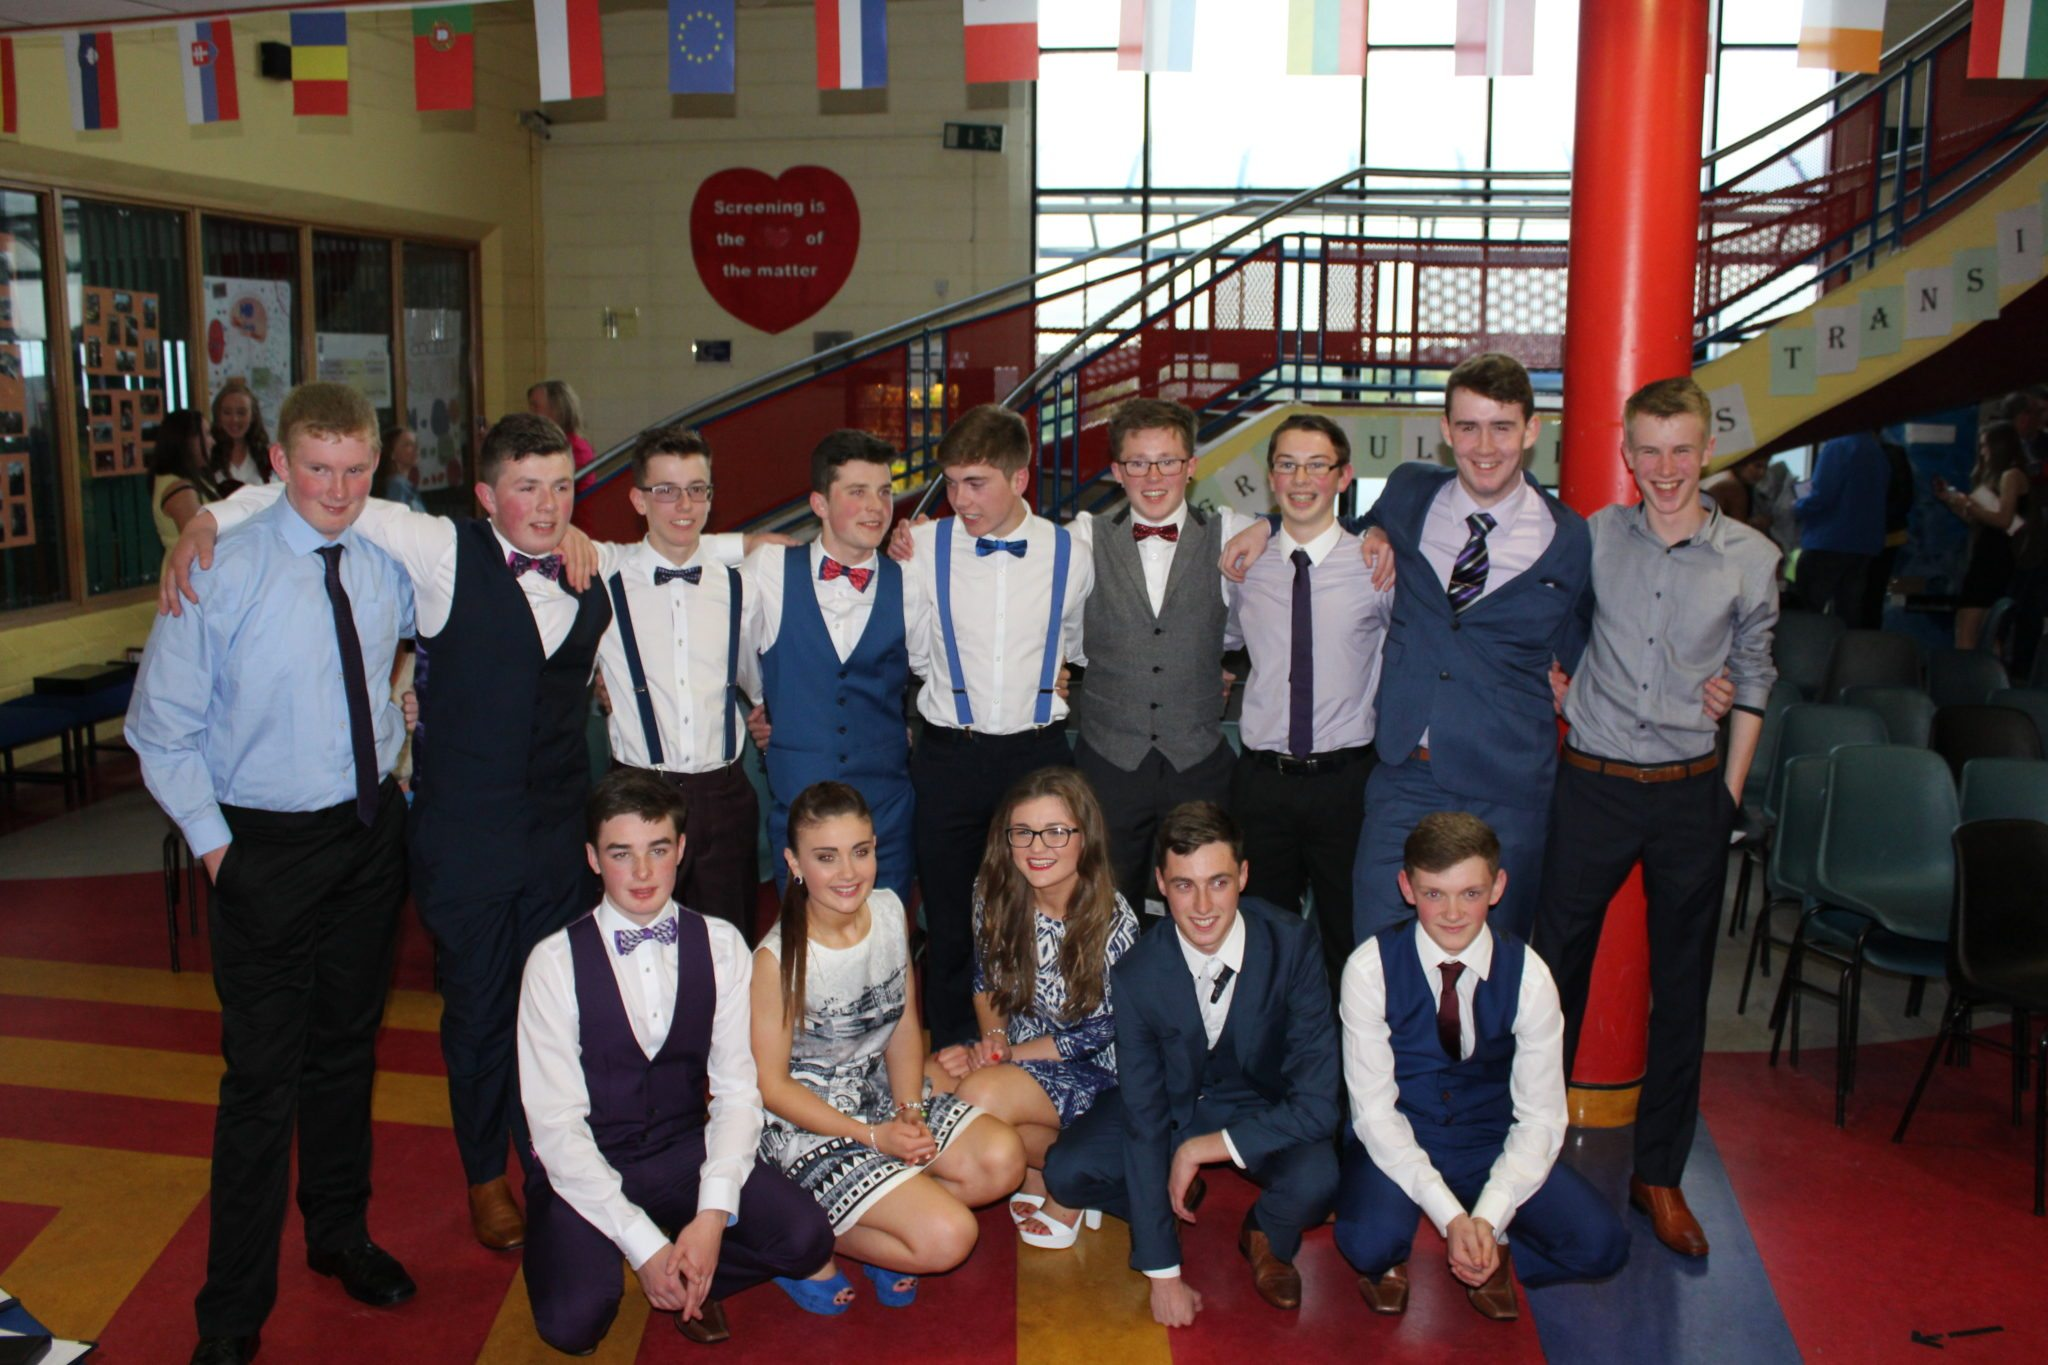 Desmond College TY Graduation 2015: Some of the TY Students at their Graduation